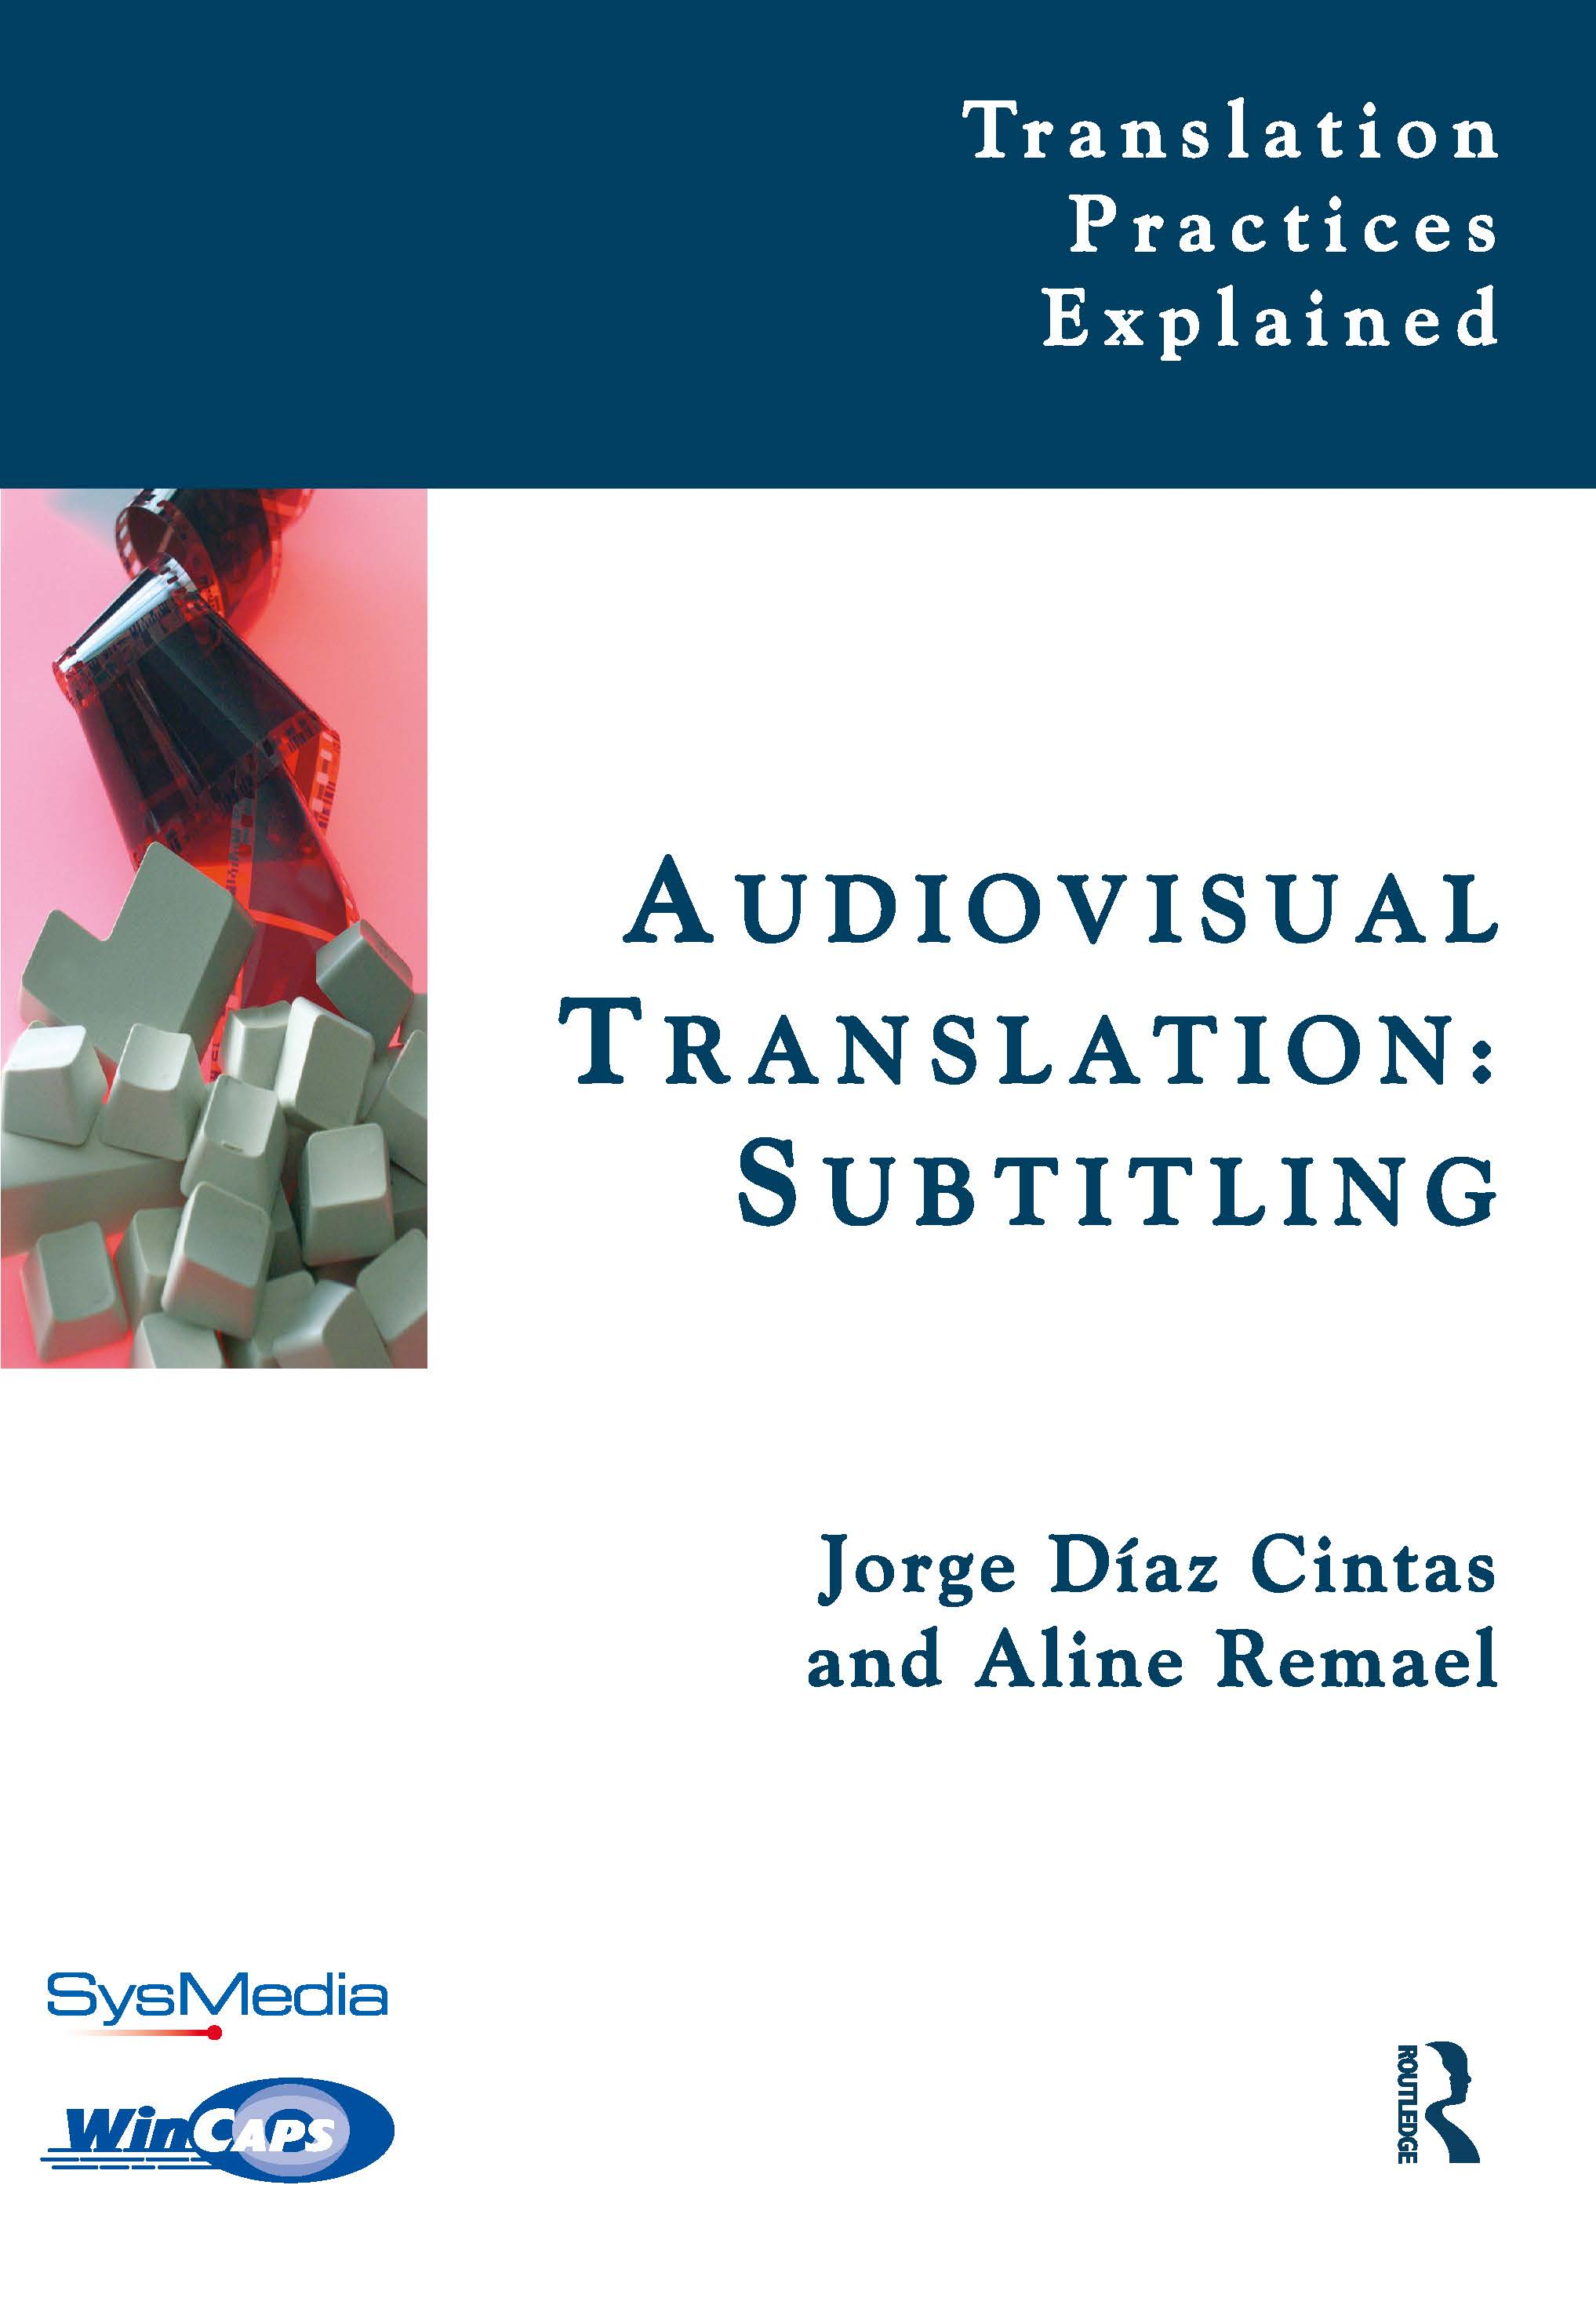 Audiovisual Translation, Subtitling book cover